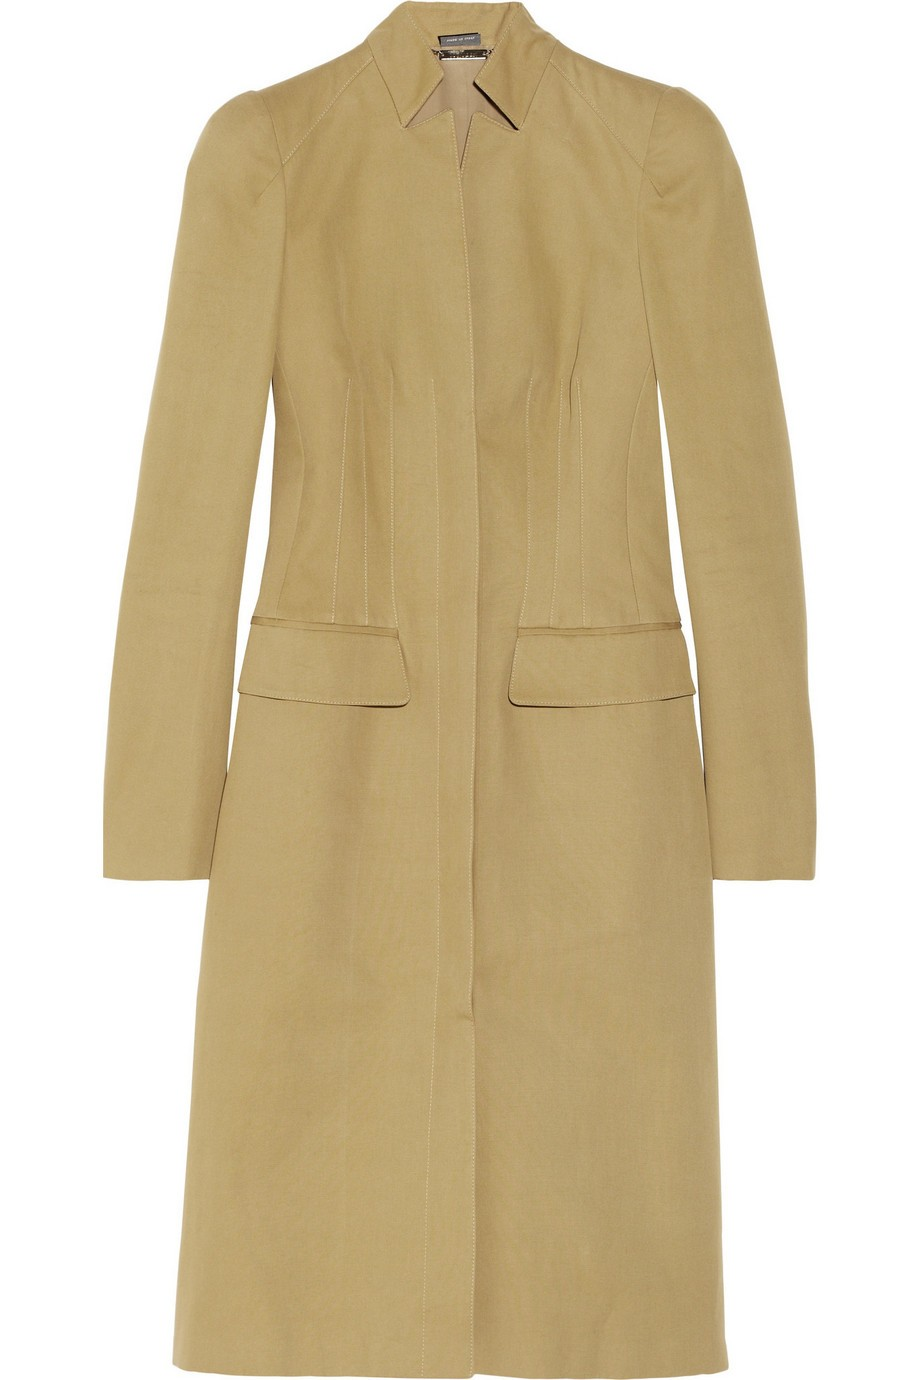 Cotton-canvas coat